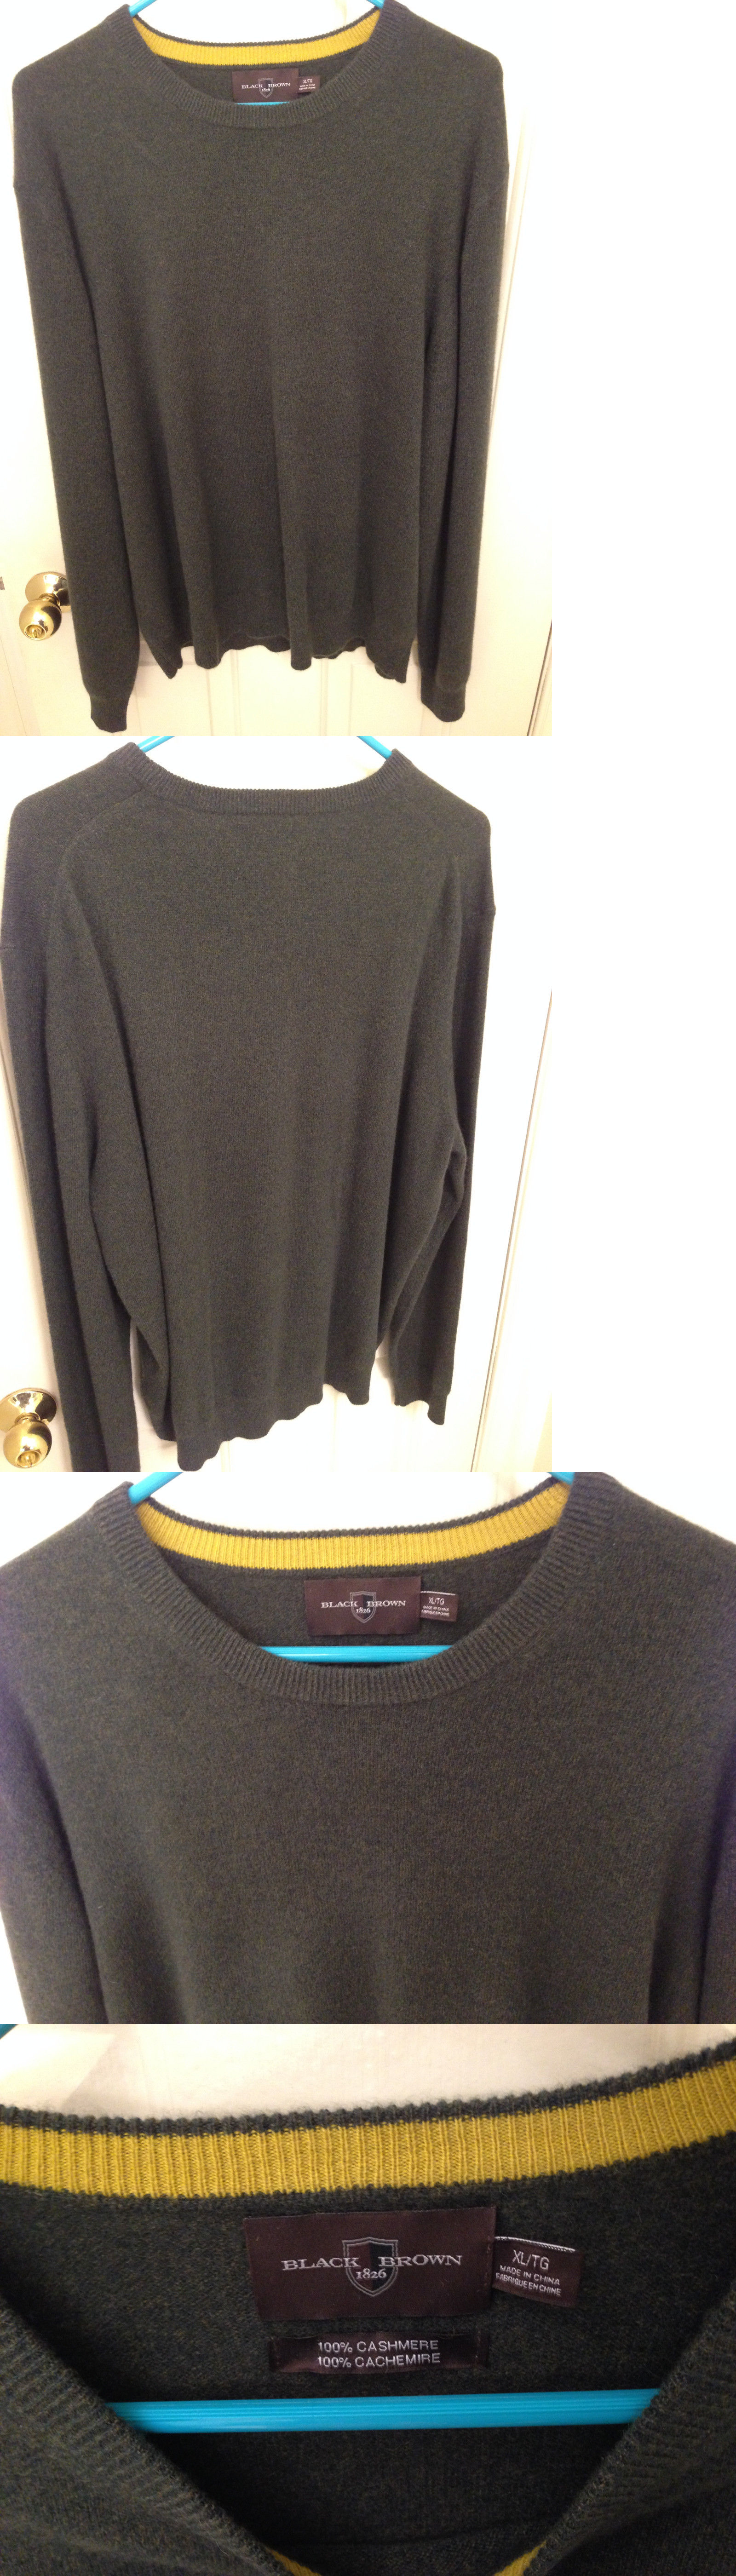 Sweaters 11484: Mens Black Brown 1826 100% Cashmere Xl Sweater ...